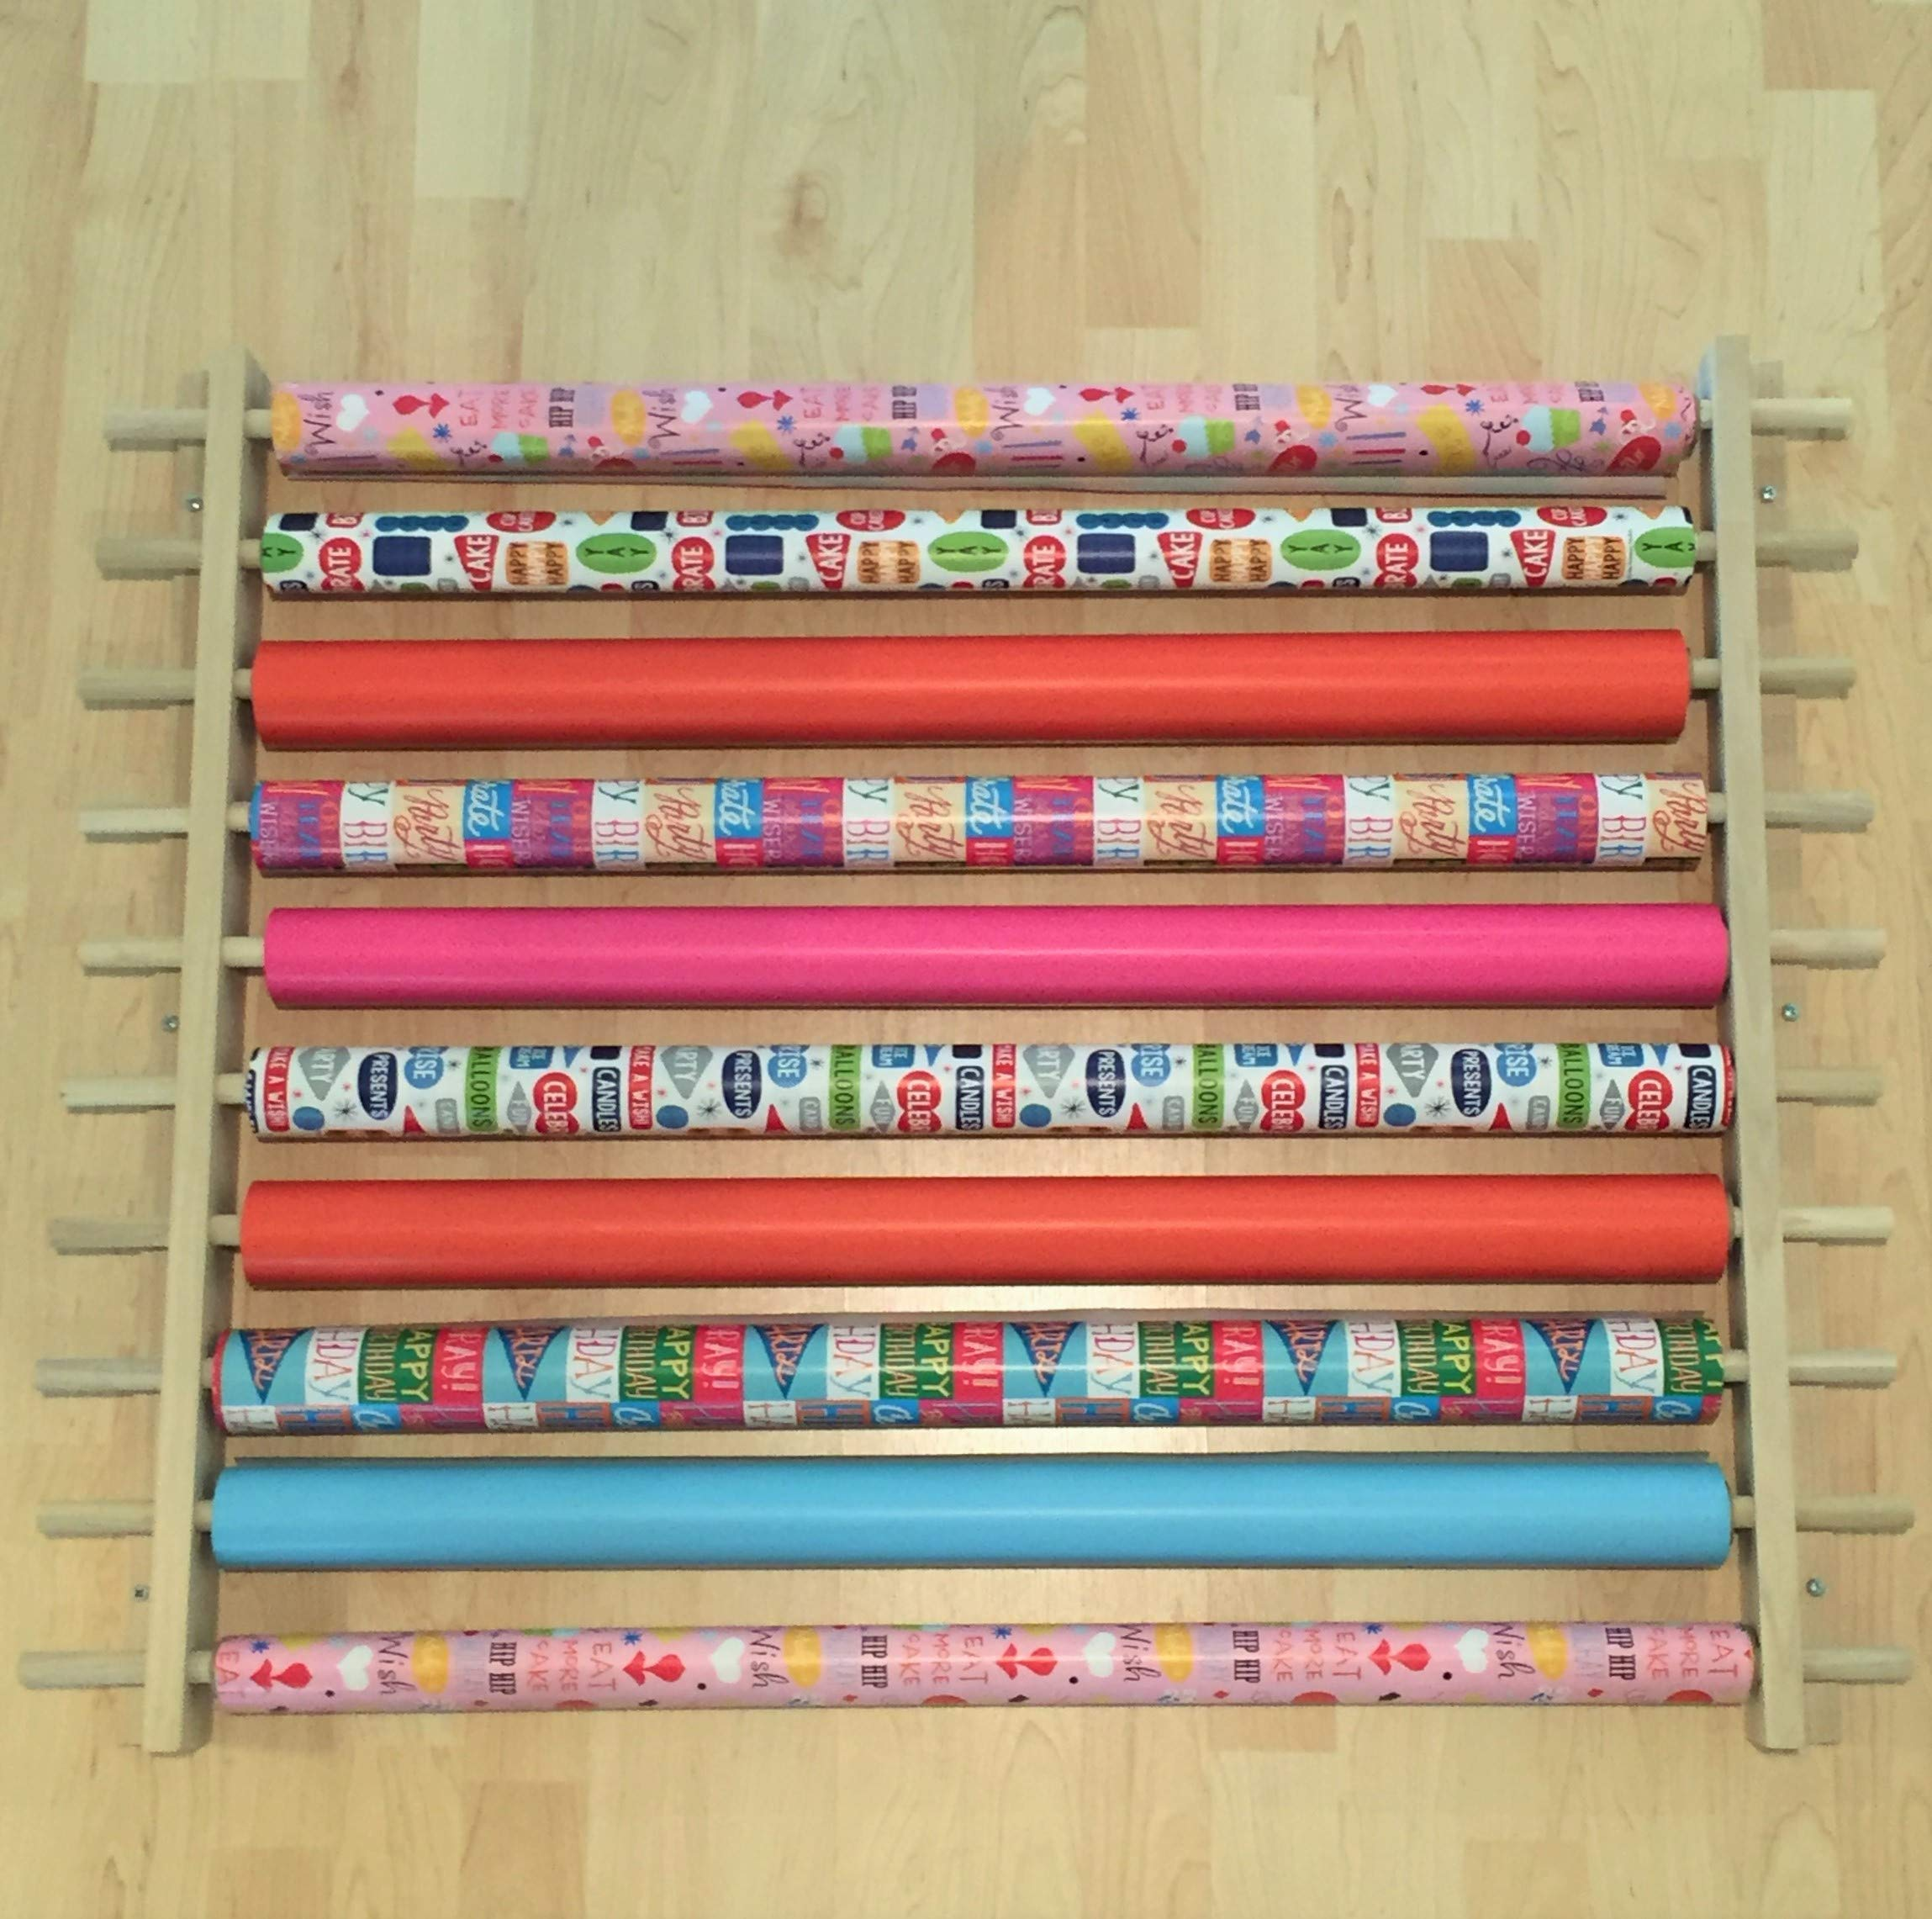 Gift Wrapping Paper Station/Organizer/Dispensing Rack. Ribbons, Cellophane or Any Other Gift Wrap or Crafts Items on a Roll. Holds 10 Rows. Adjustable Width. Easy Wall Mount. Hardware Included. by Z-Things